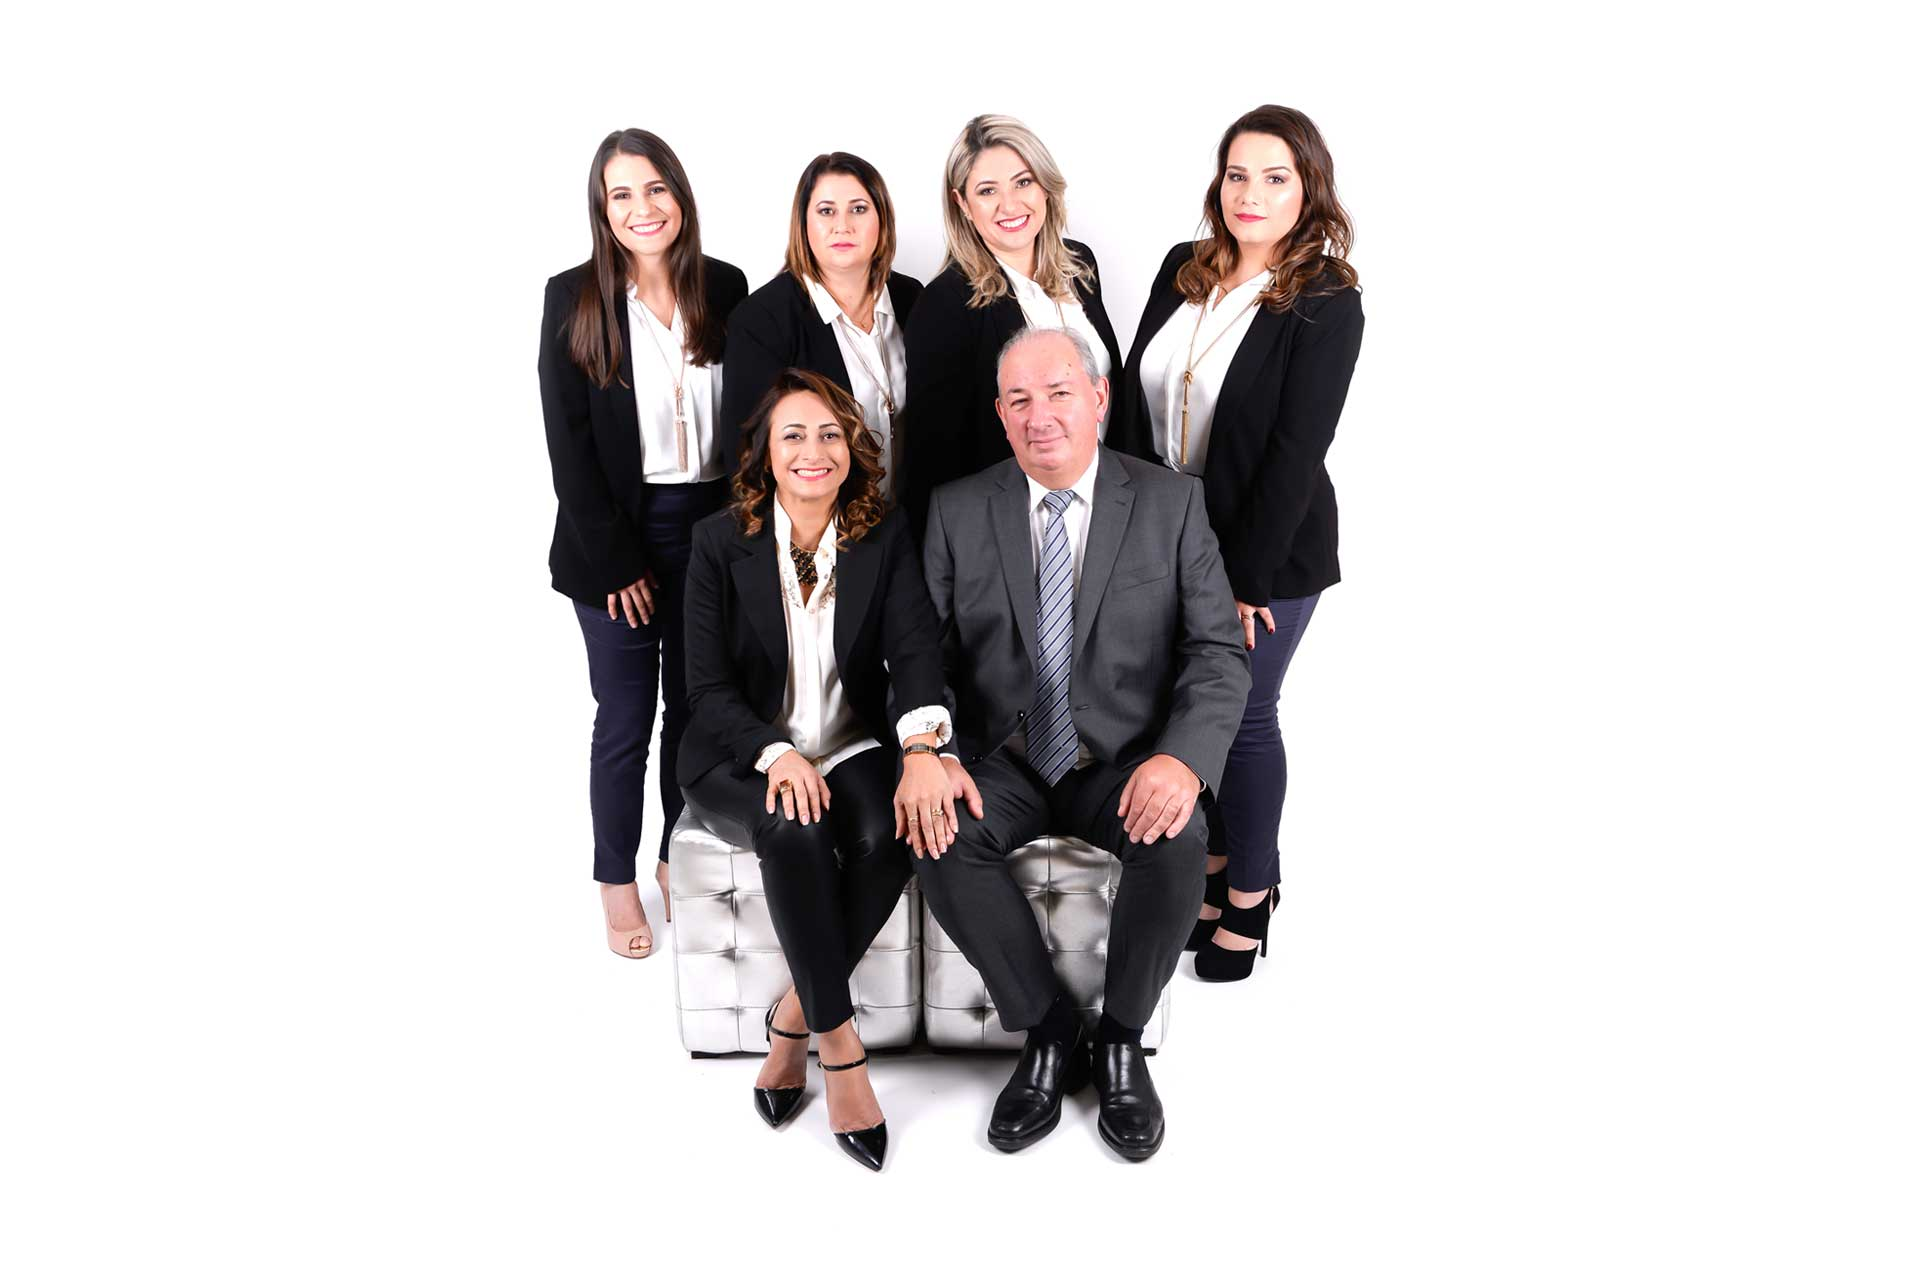 equipe-banner-accueil-ts-clean-titres-services